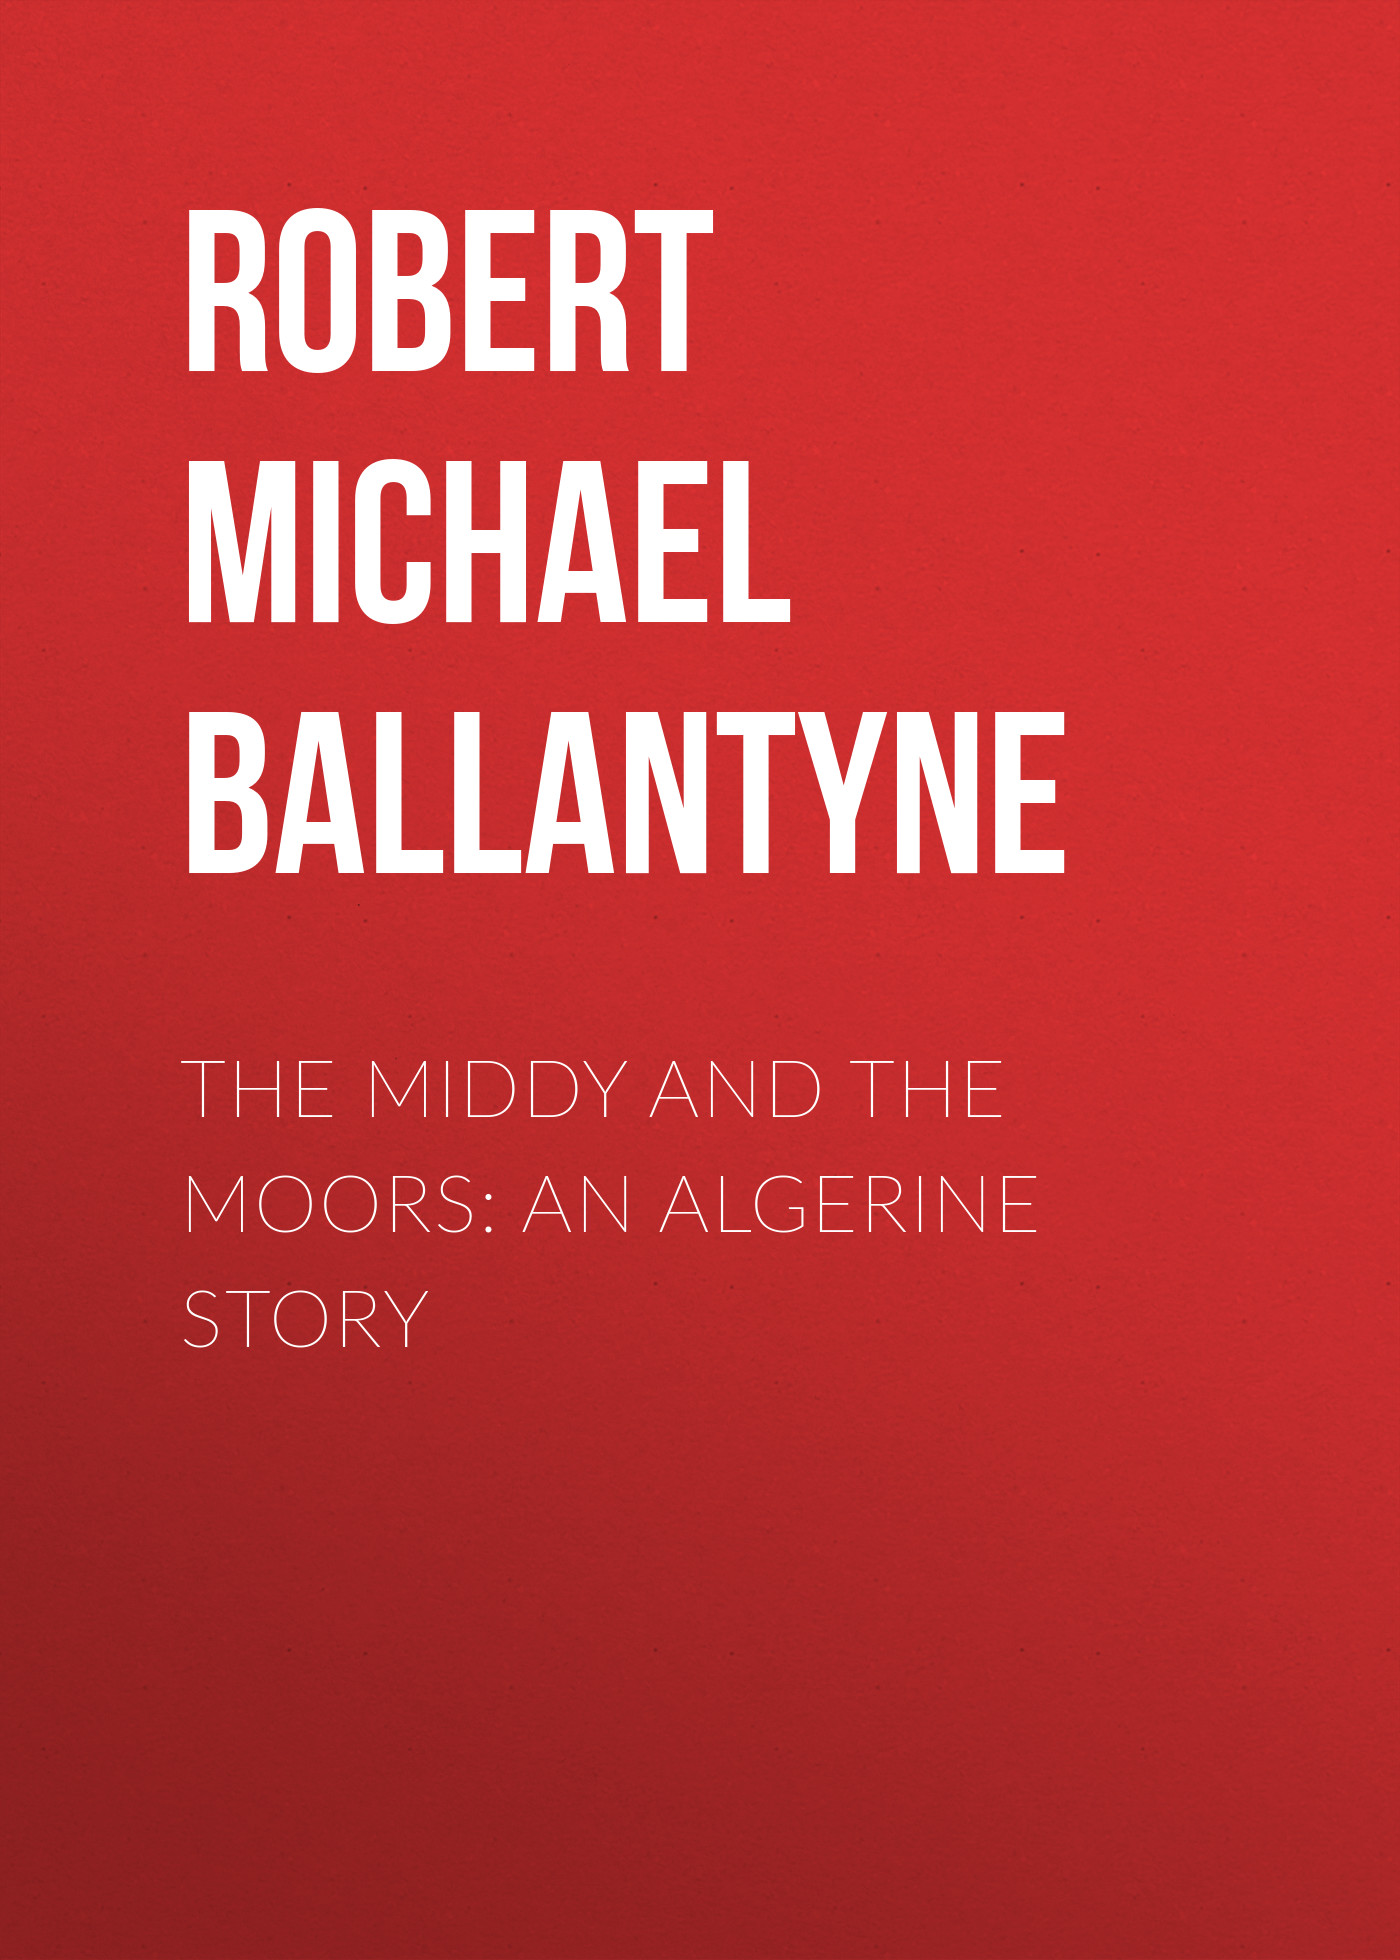 Robert Michael Ballantyne The Middy and the Moors: An Algerine Story